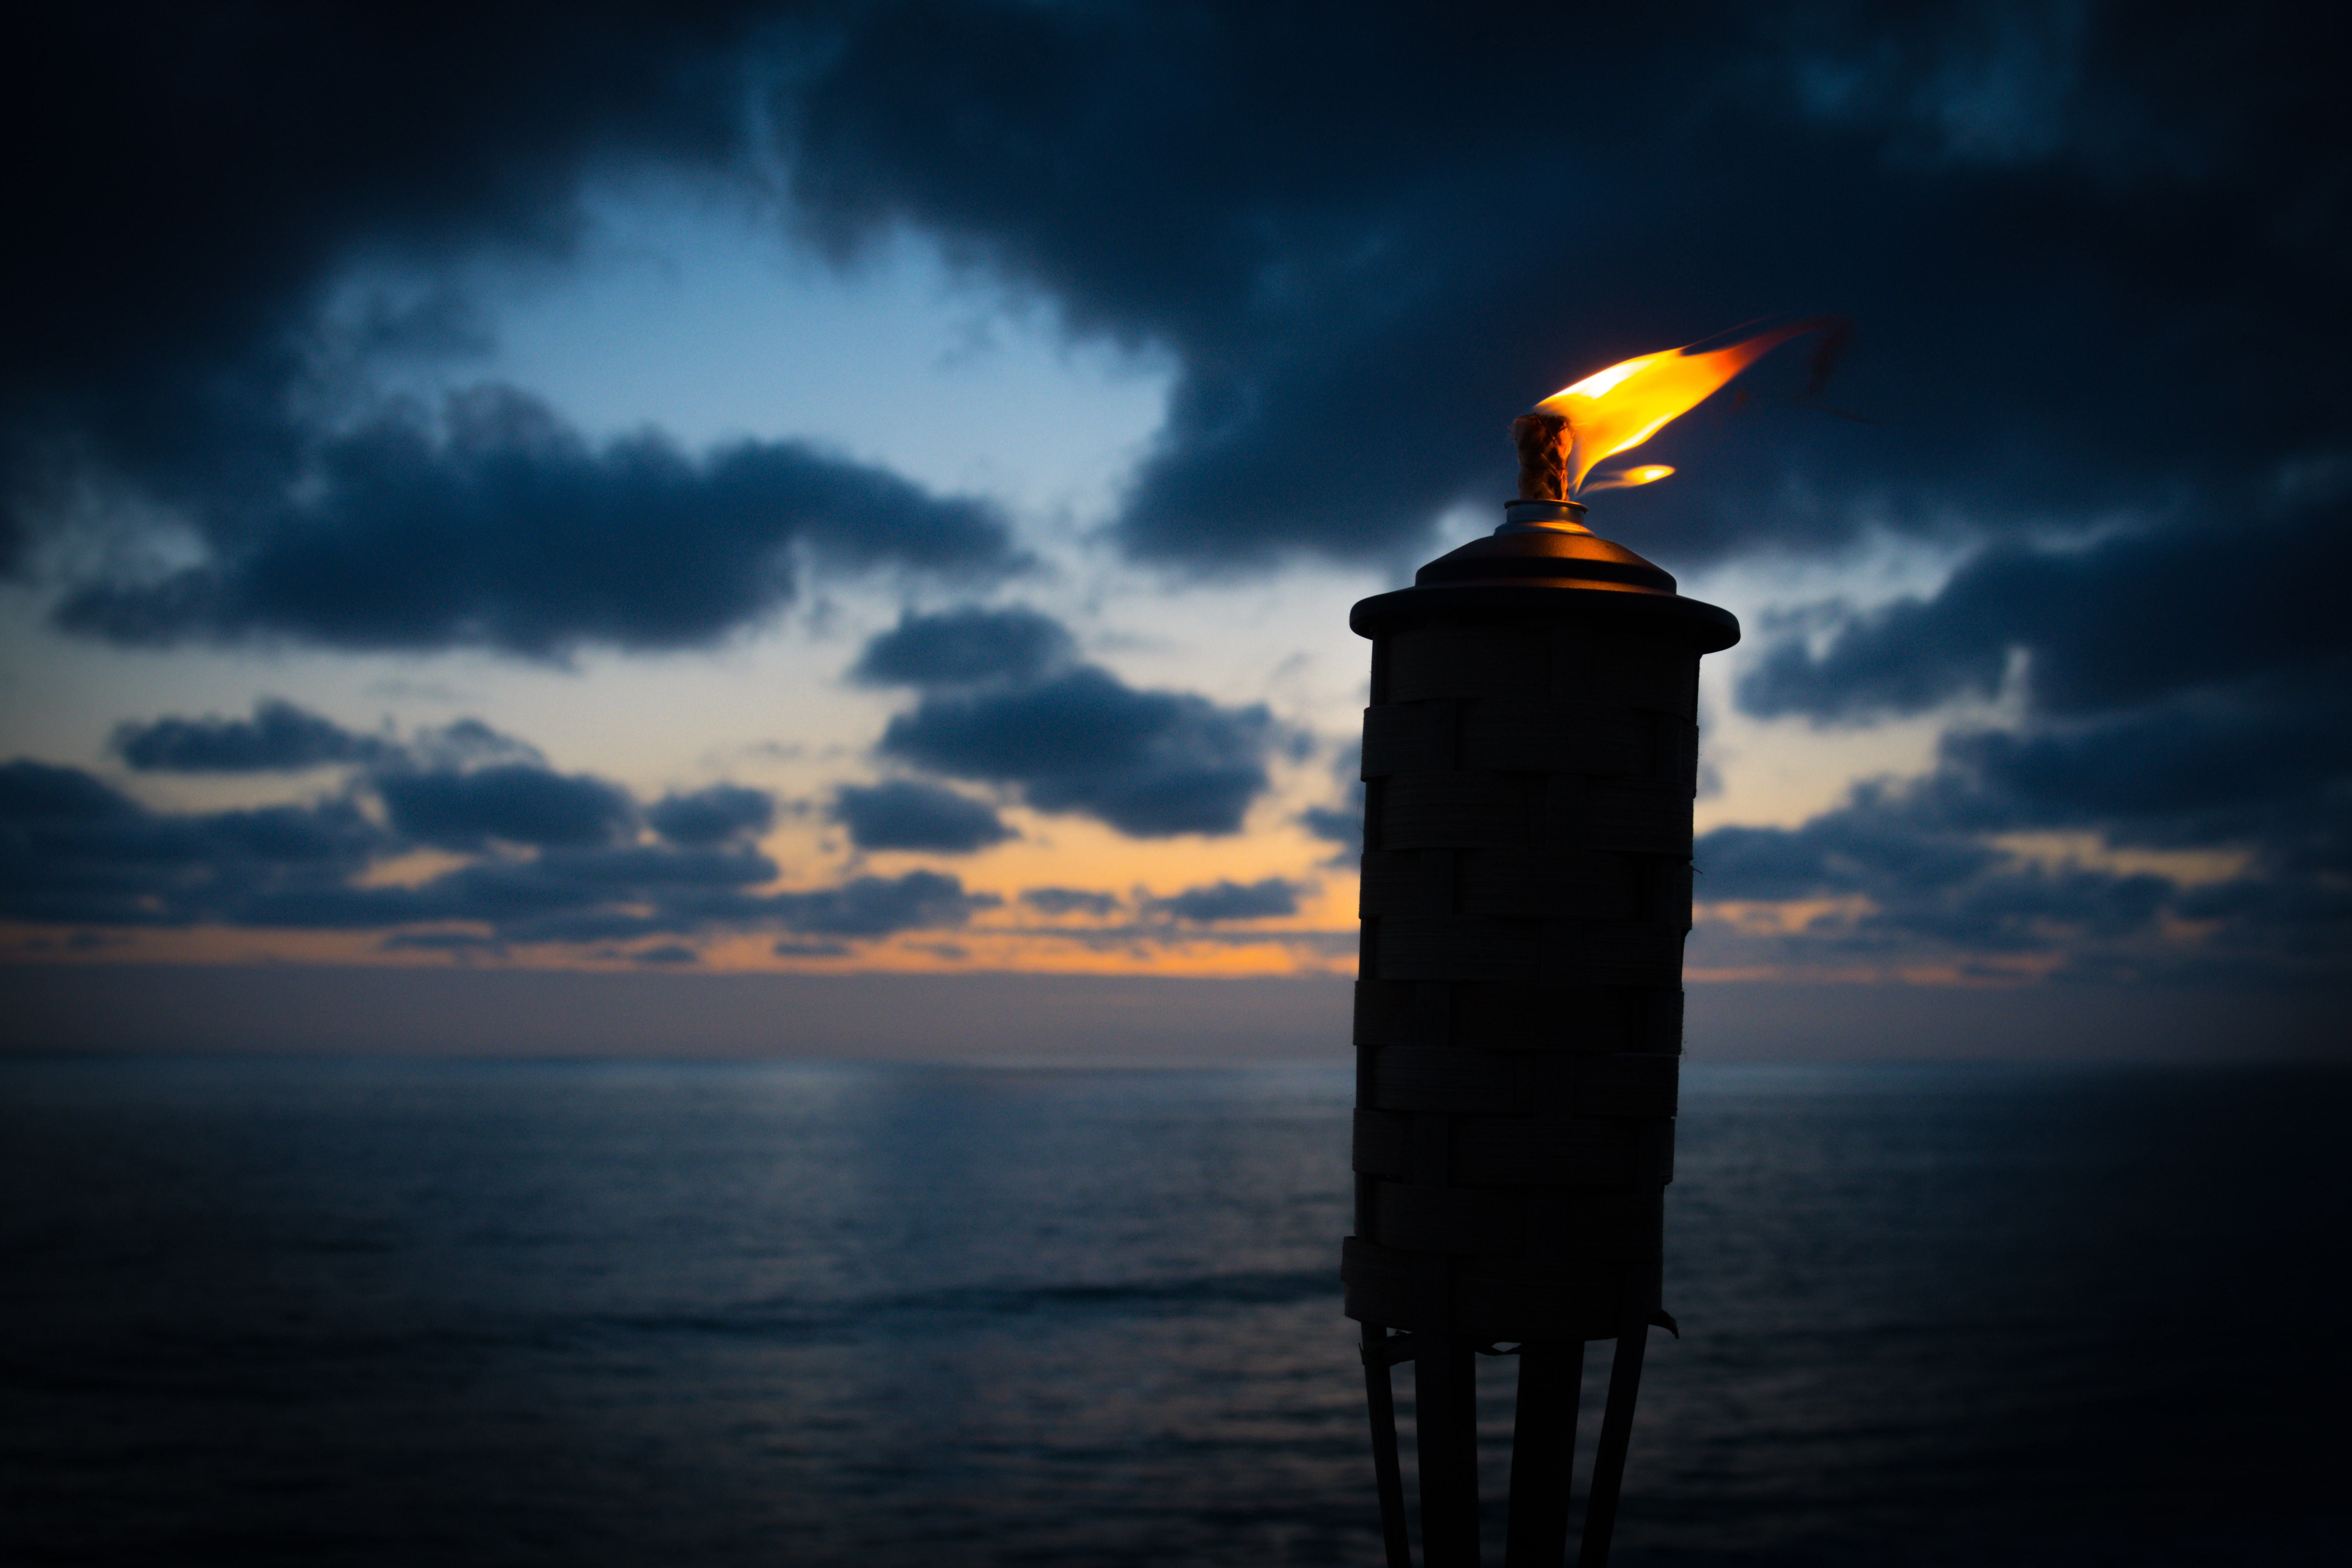 lighted tiki torch near sea at night